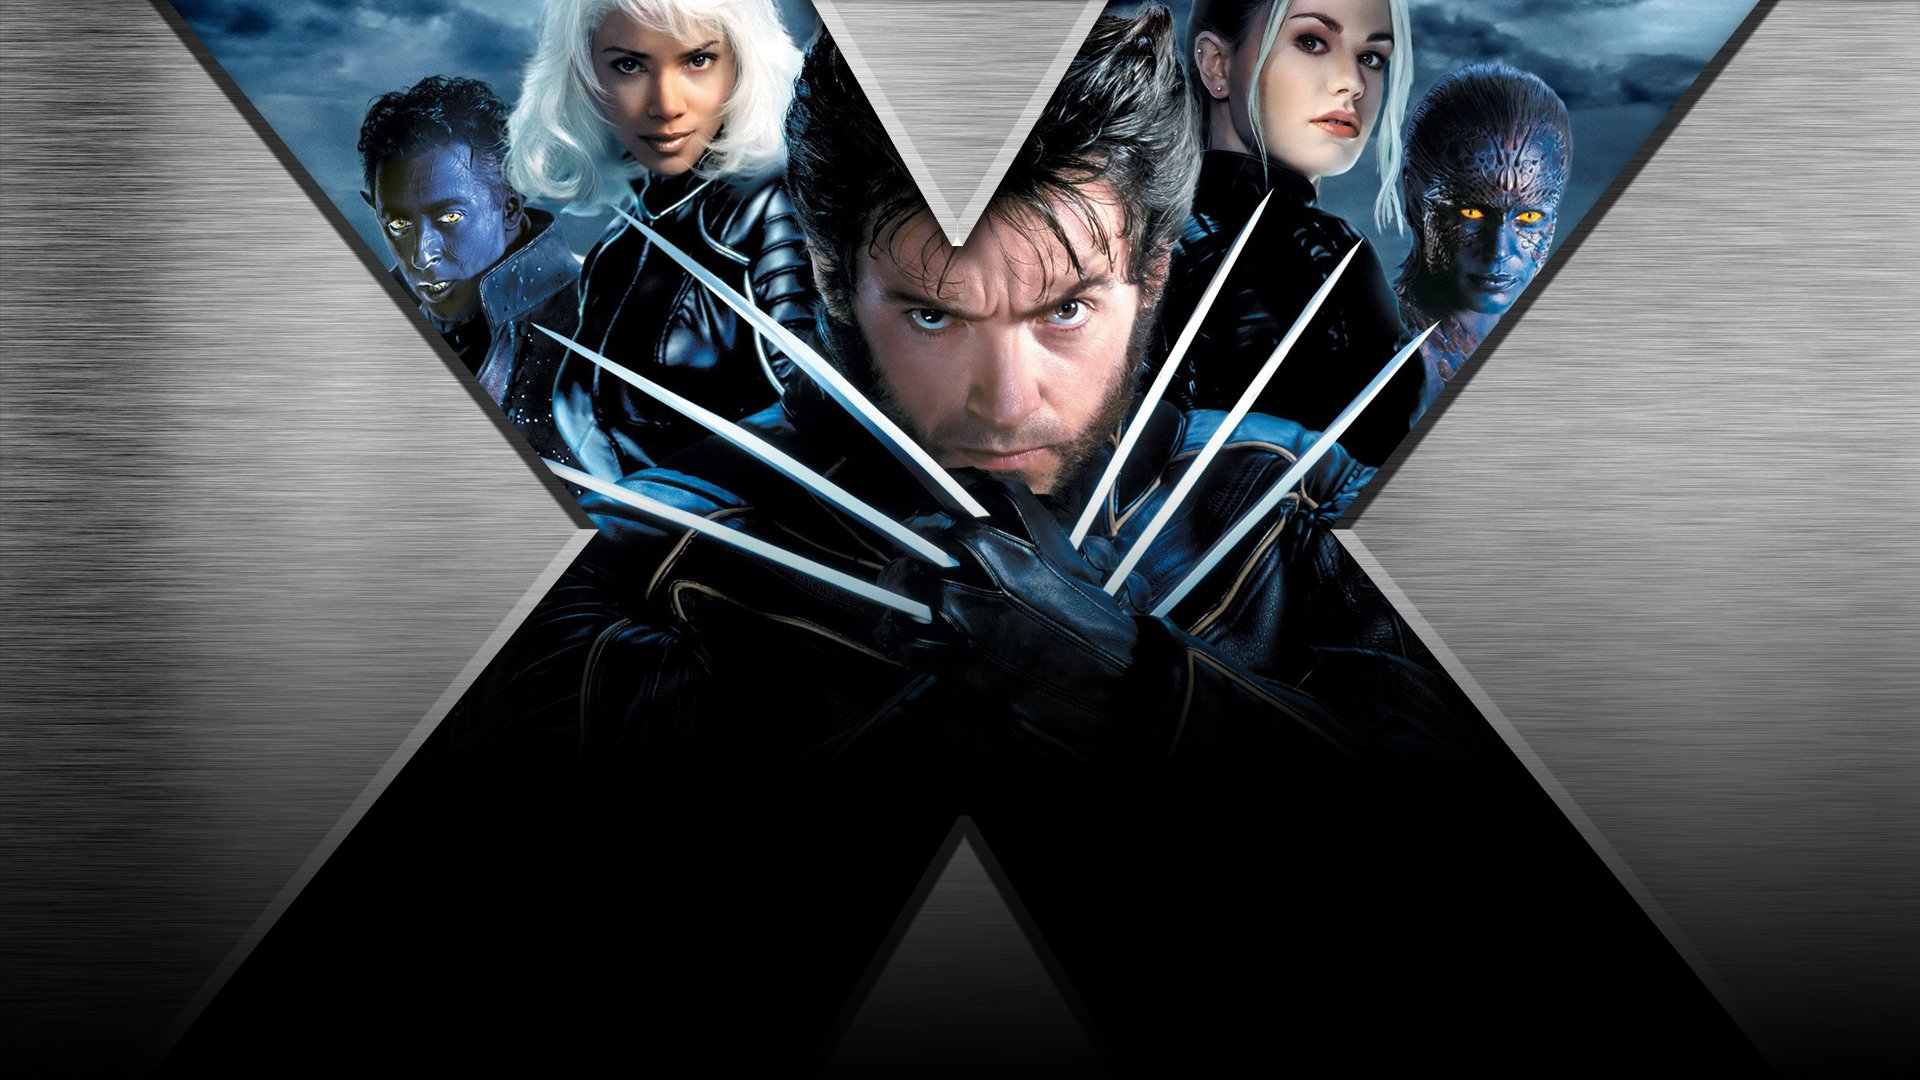 X men 2 full movie